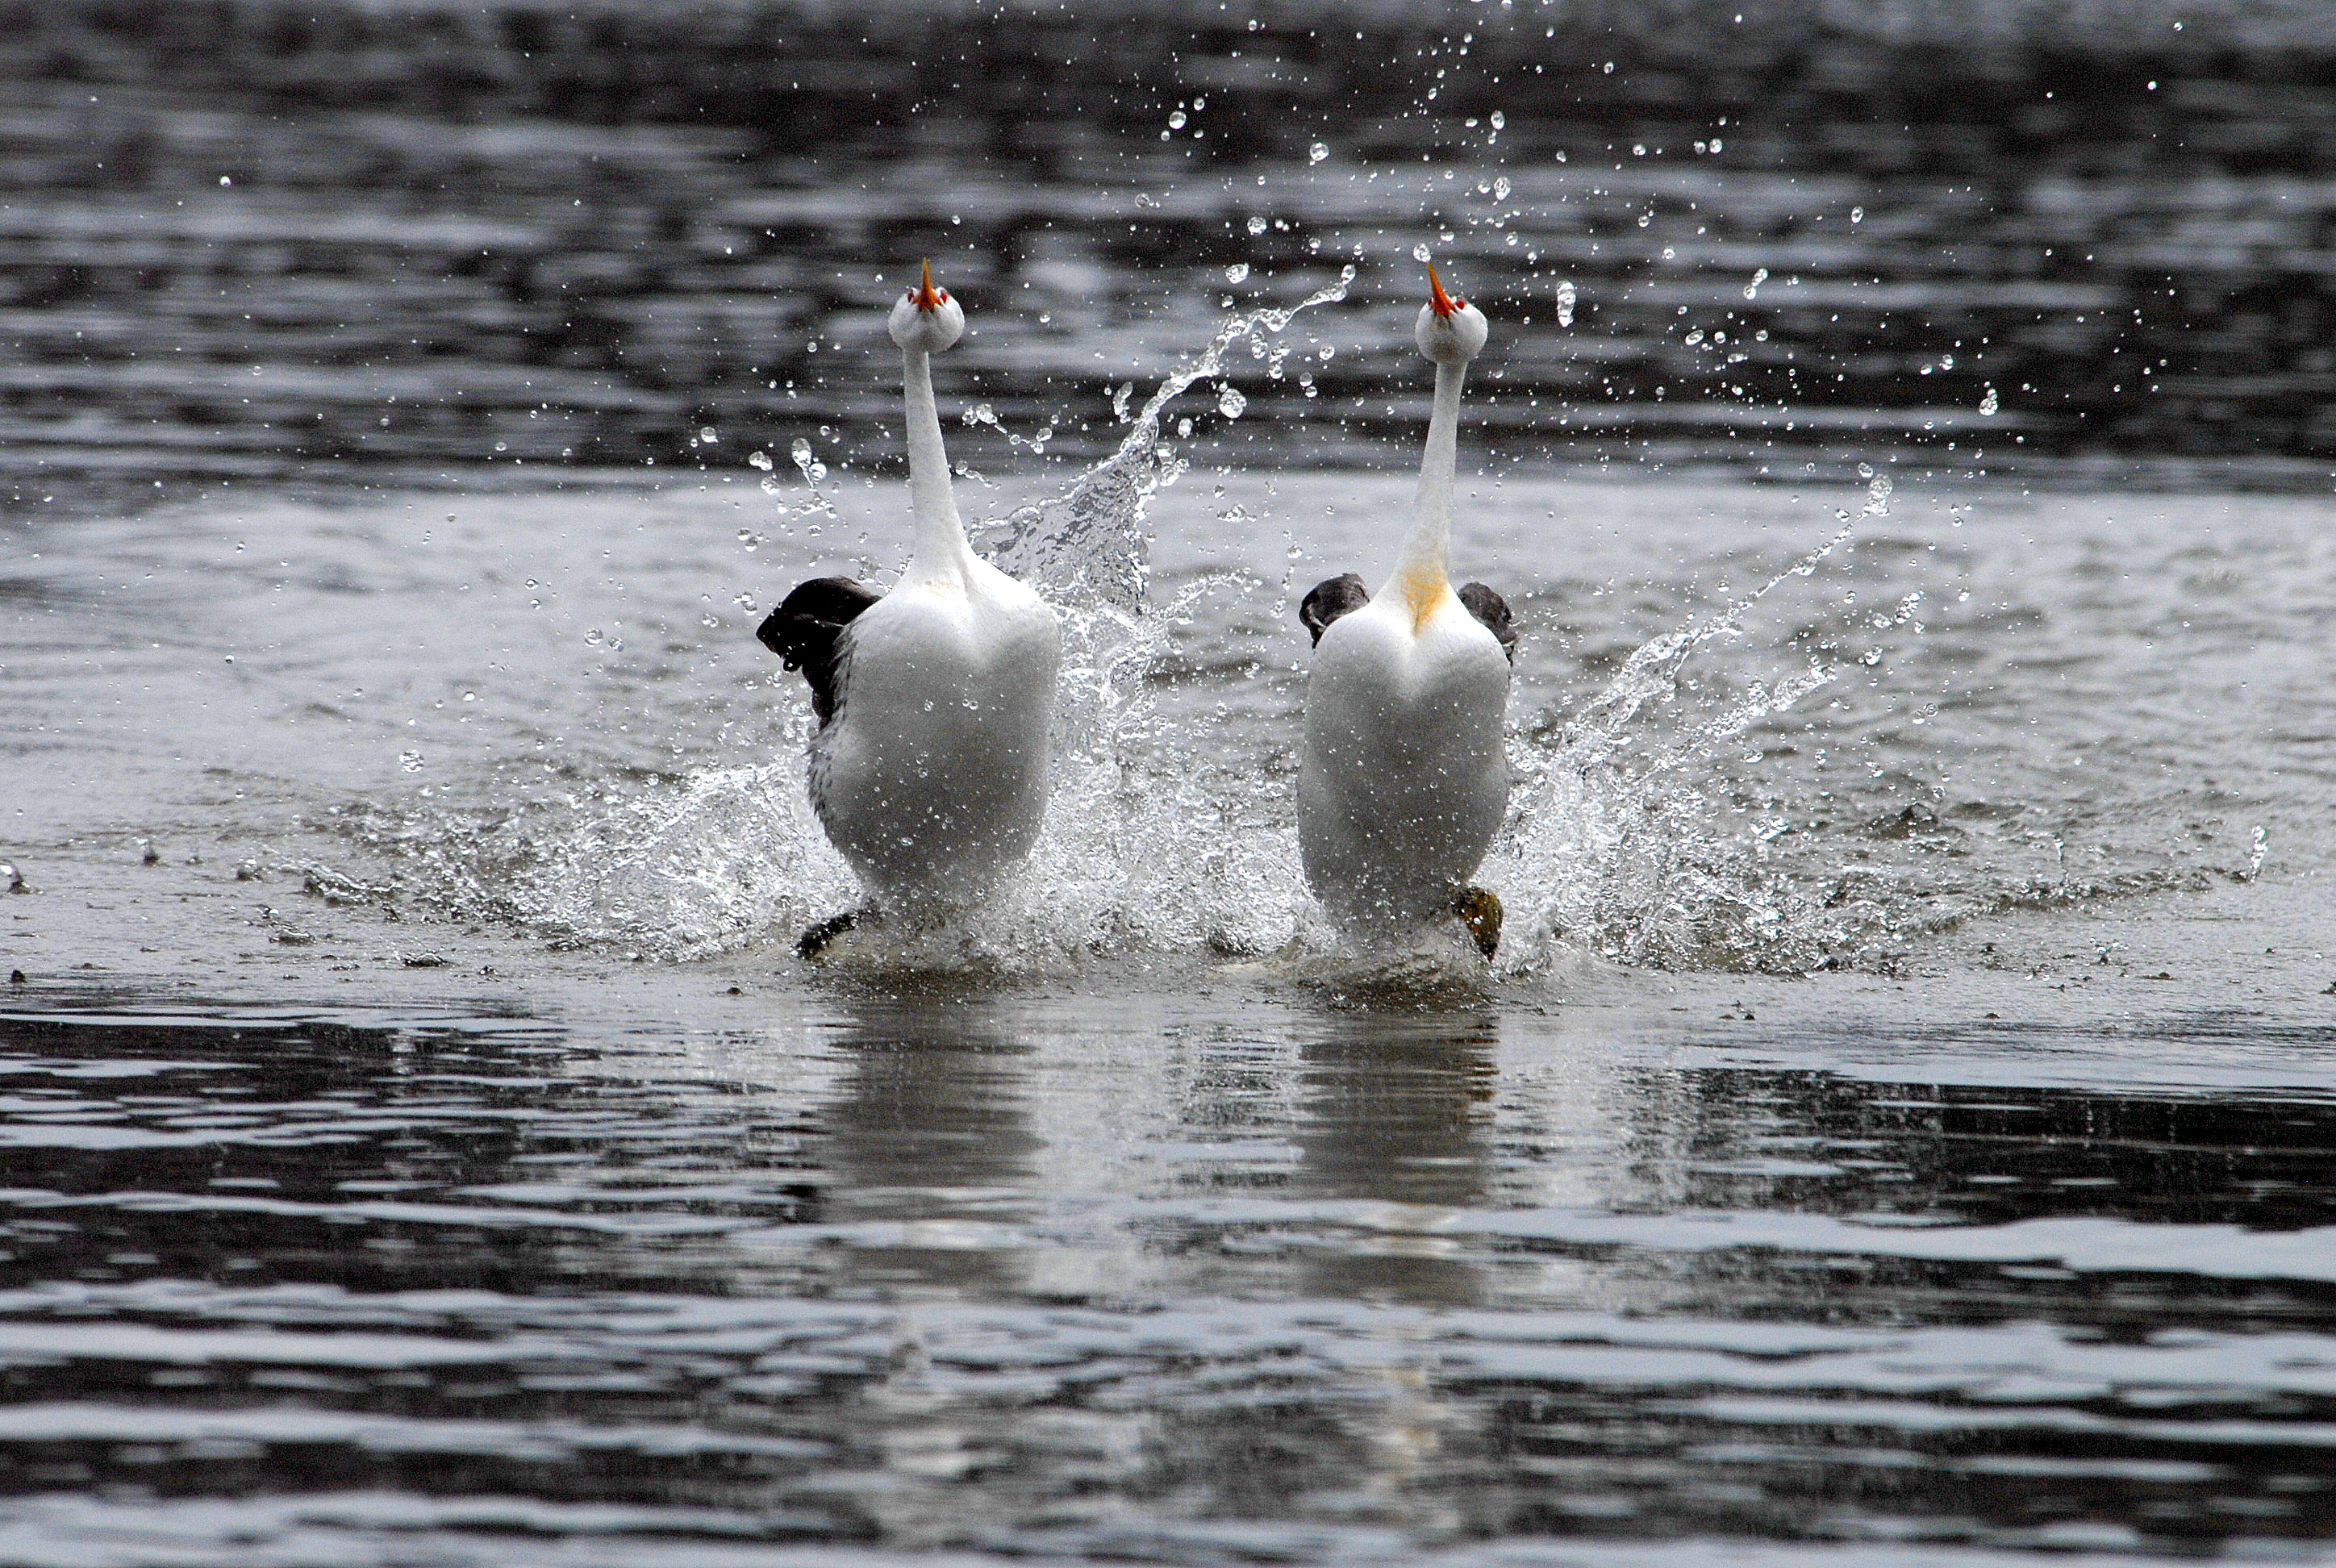 https://i0.wp.com/upload.wikimedia.org/wikipedia/commons/8/80/Clarks_grebes_rushing_%286862203949%29.jpg